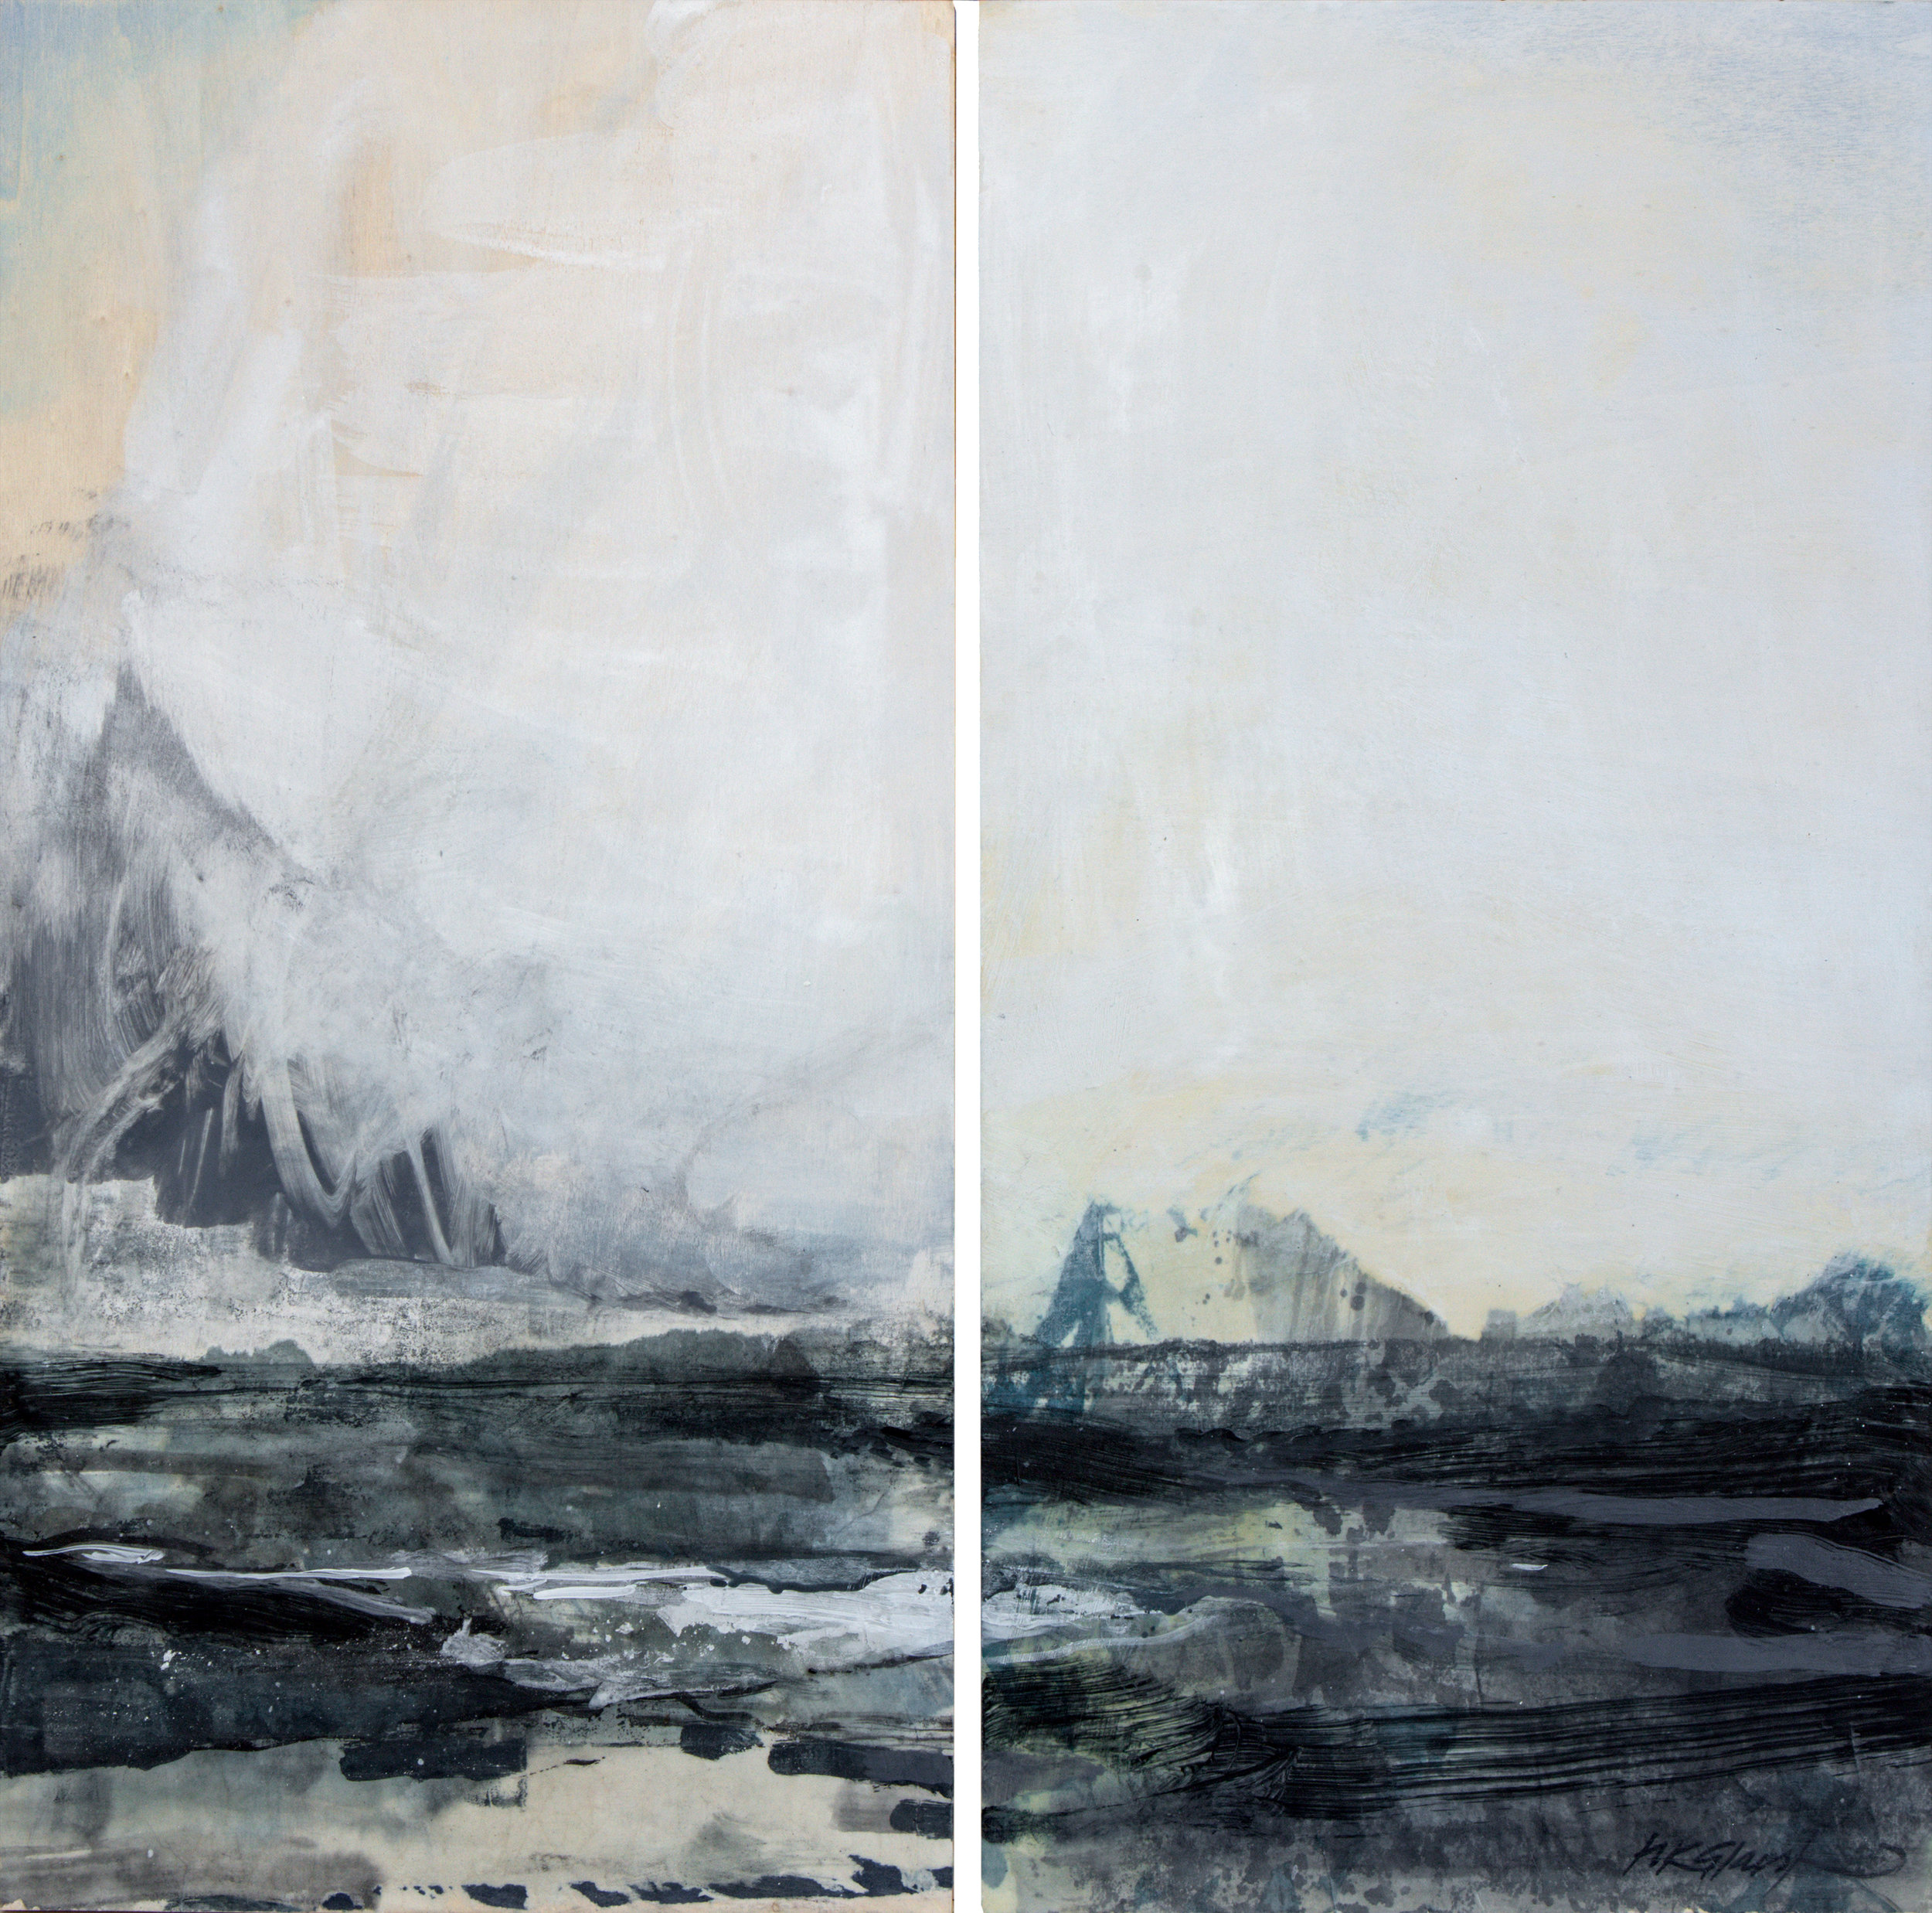 Forbidden • Diptych •Oil and Encaustic on Board • 51x51cm • Sold